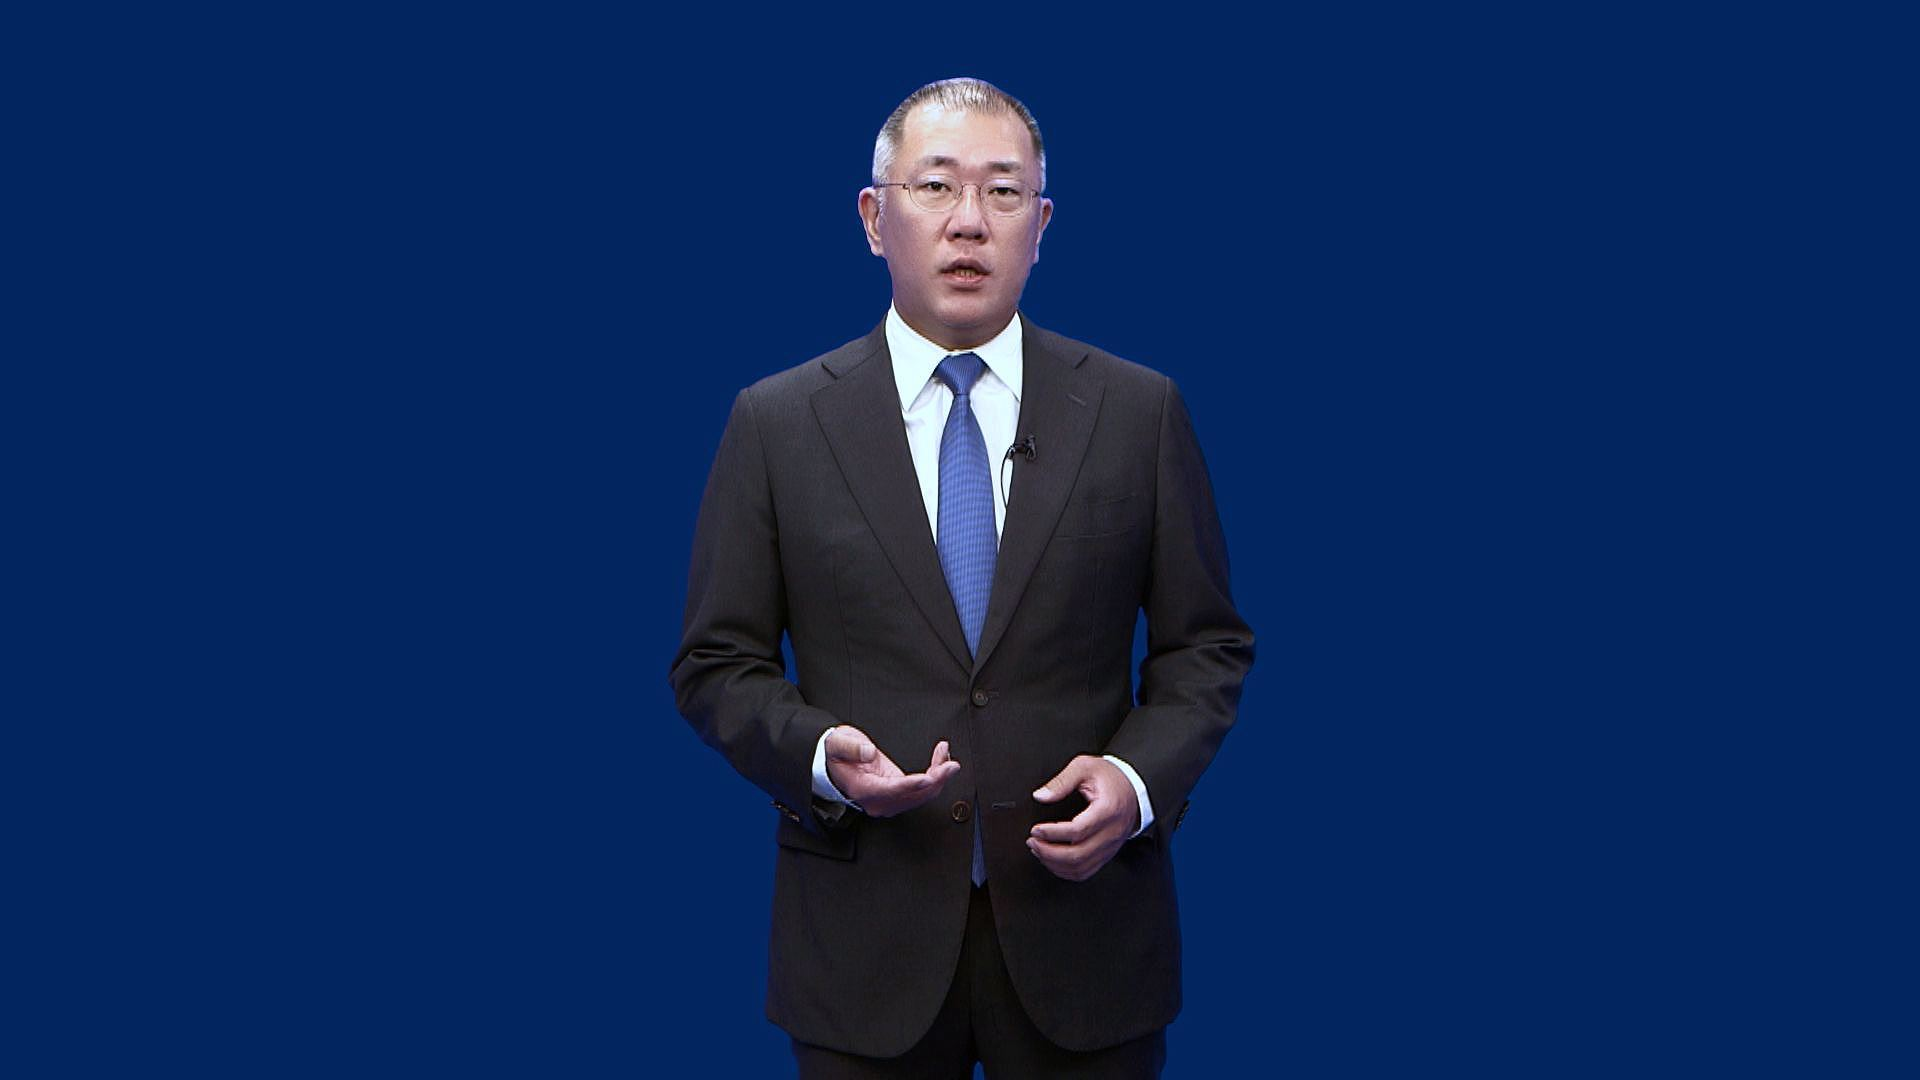 Euisun Chung Inaugurated as Chairman of Hyundai Motor Group, Opening a New Chapter in History - Image 1